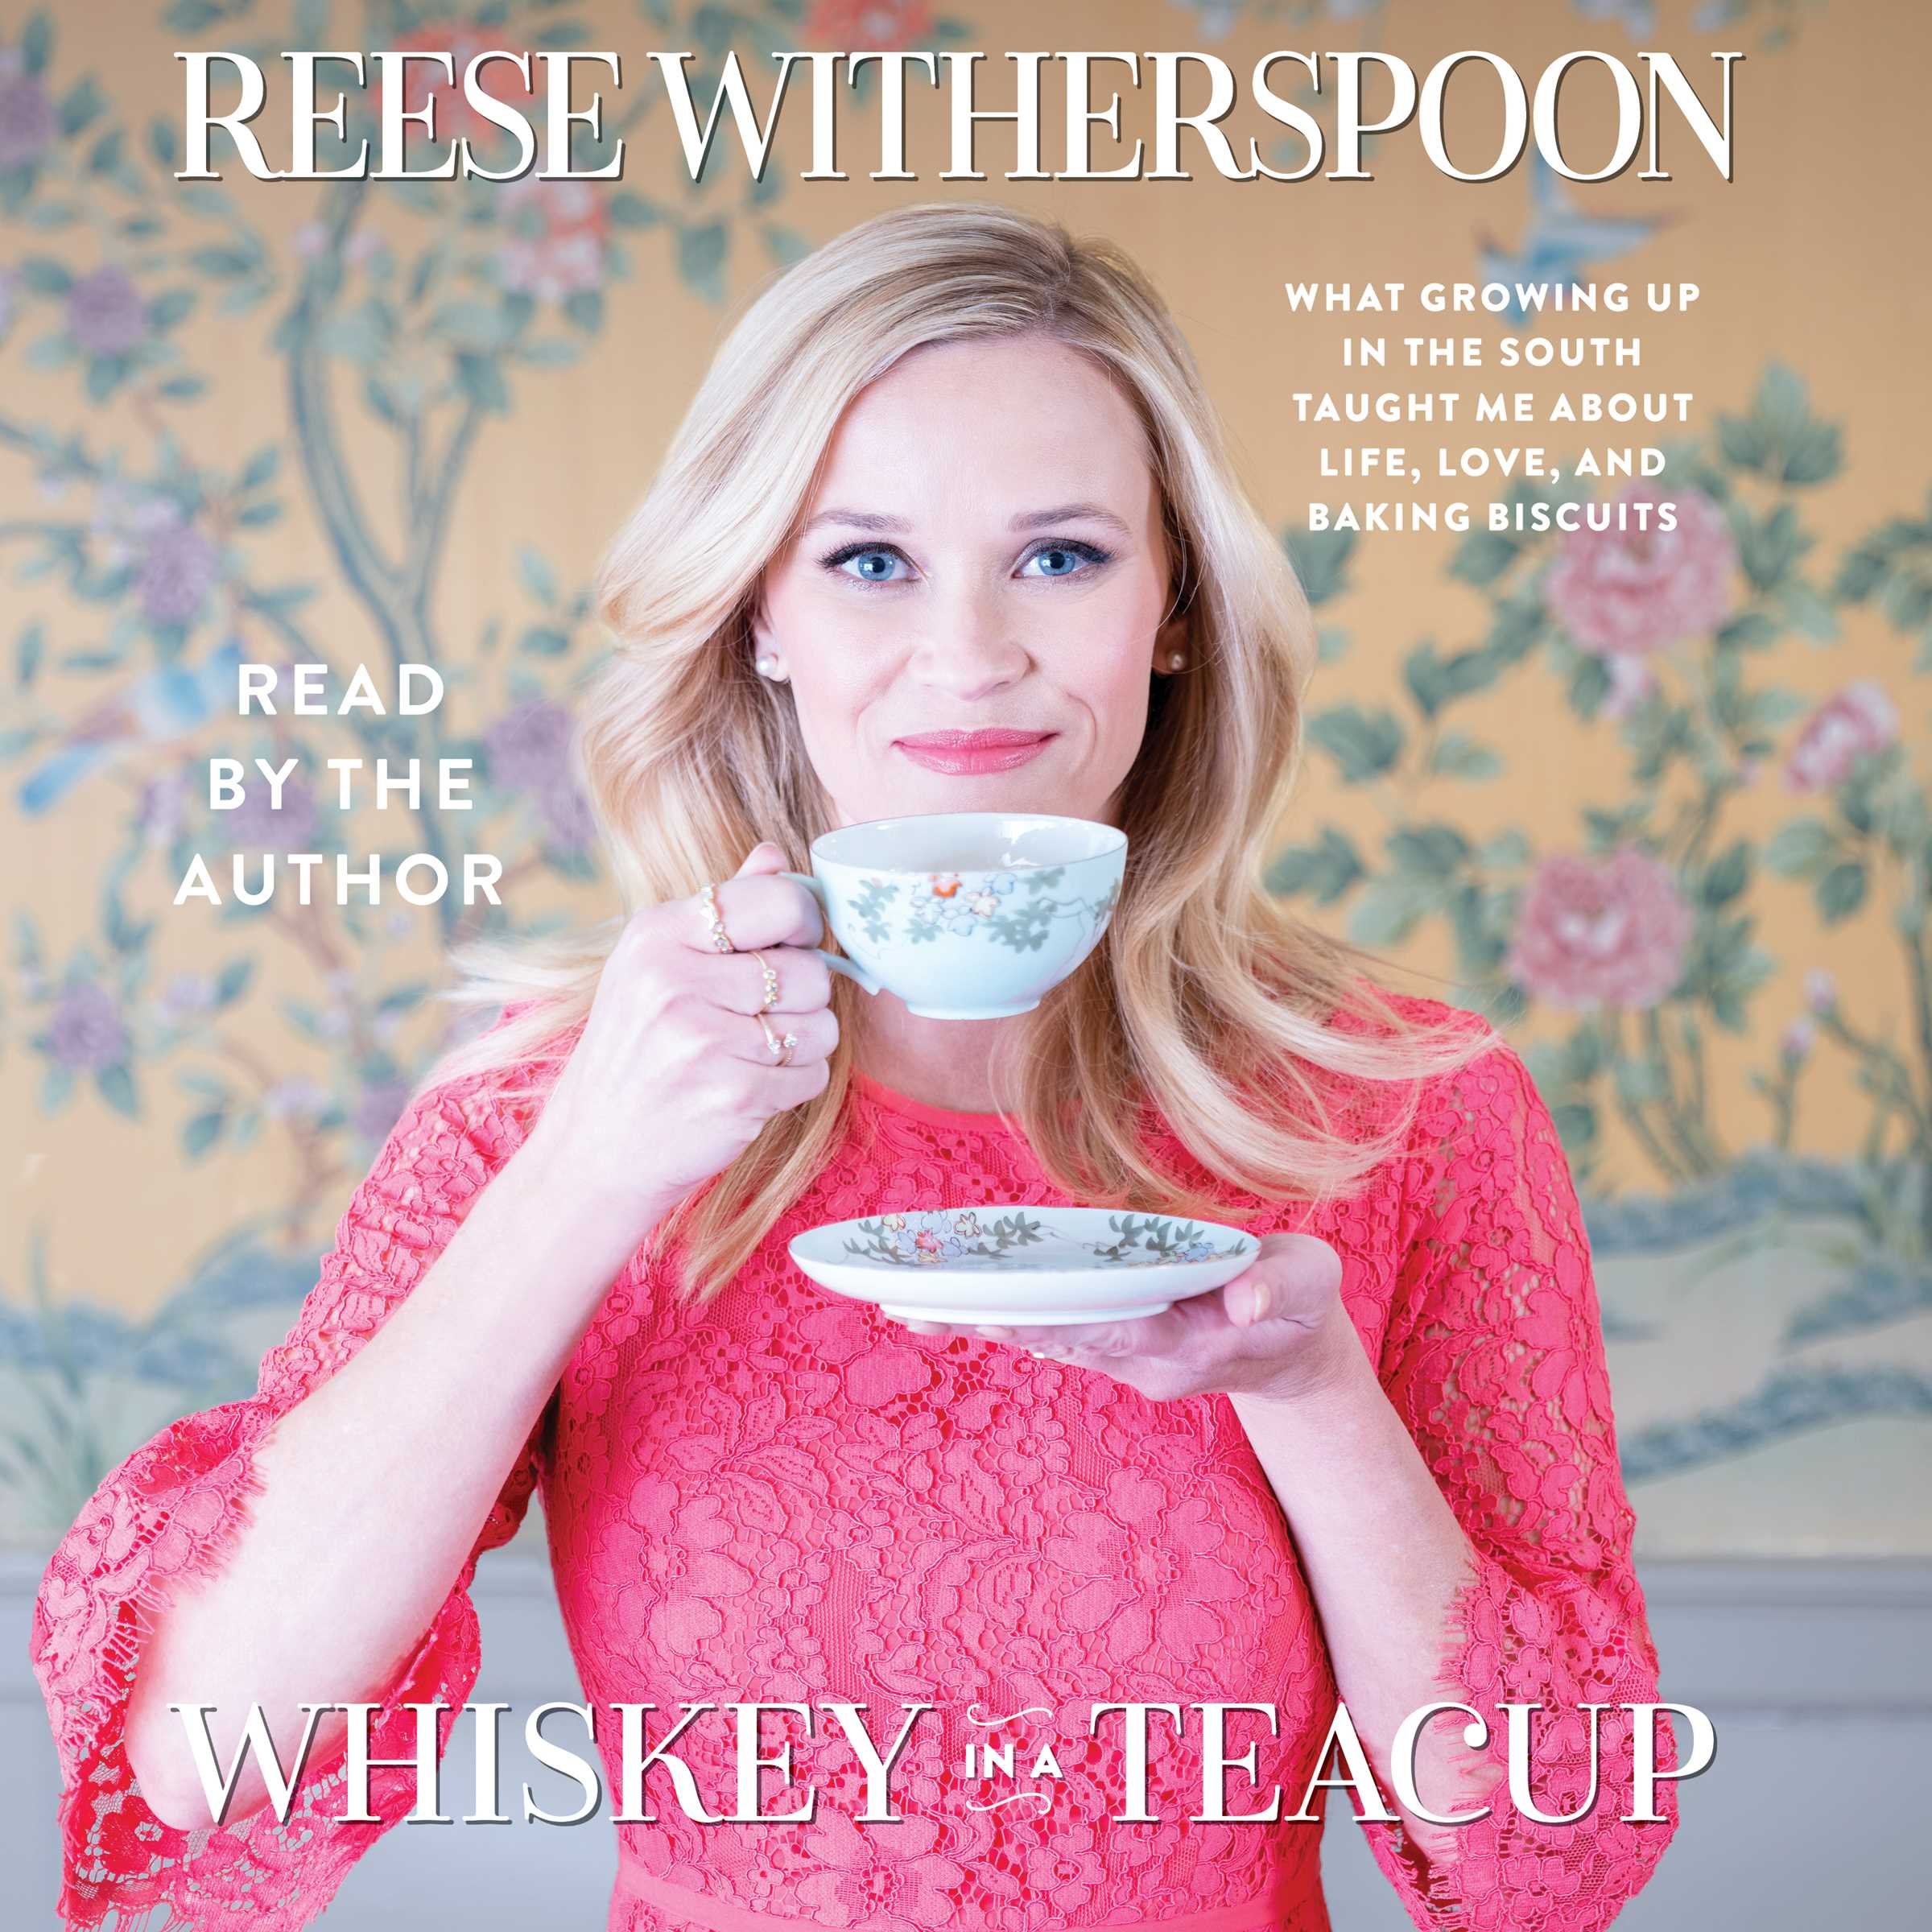 Whiskey in a teacup 9781508258636 hr